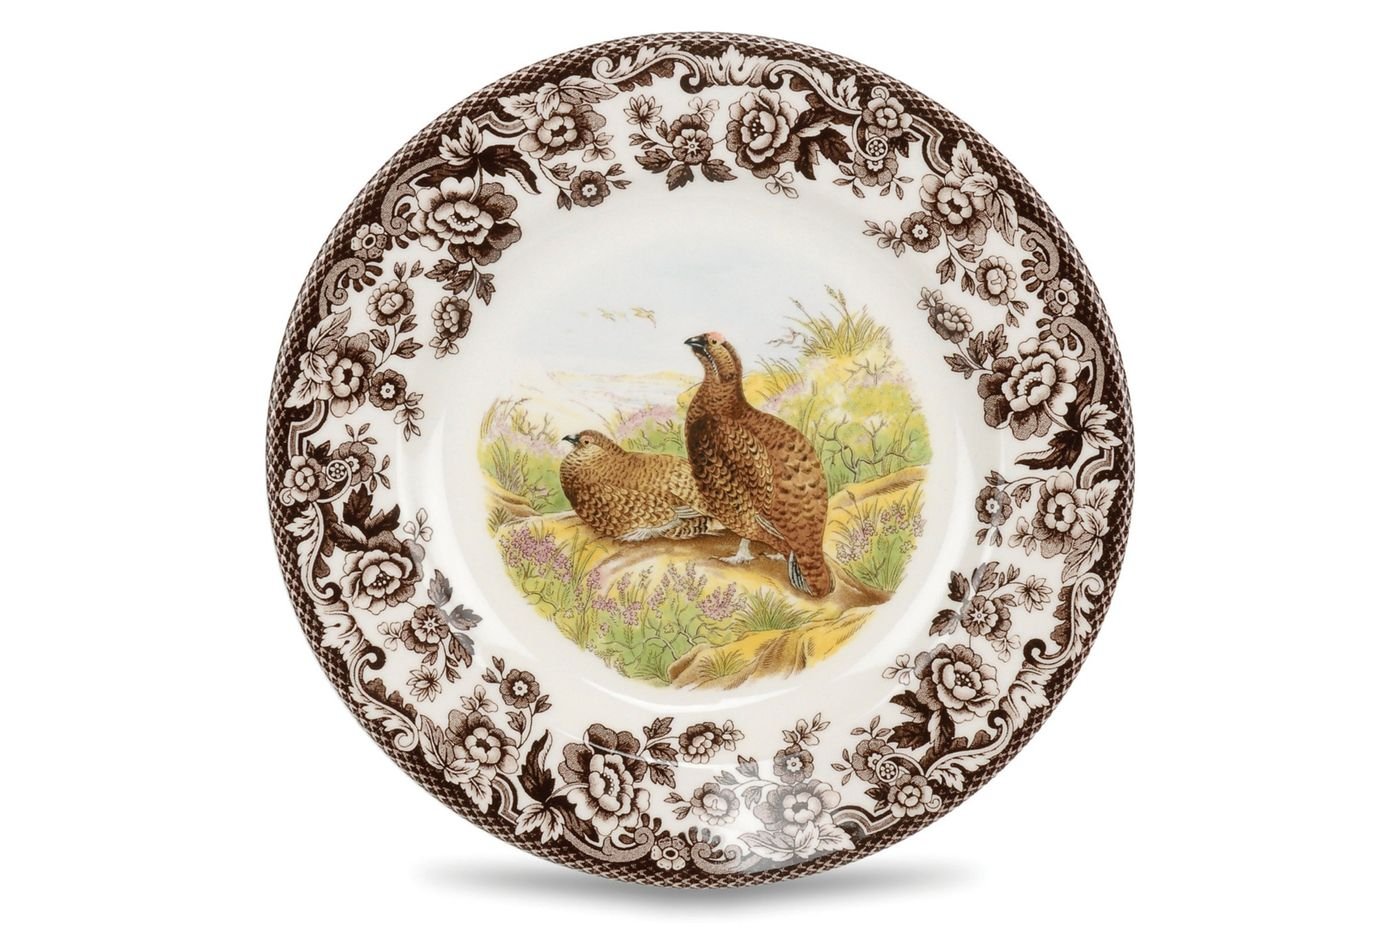 "Spode Woodland Starter / Salad / Dessert Plate Red Grouse 7 3/4"" thumb 1"